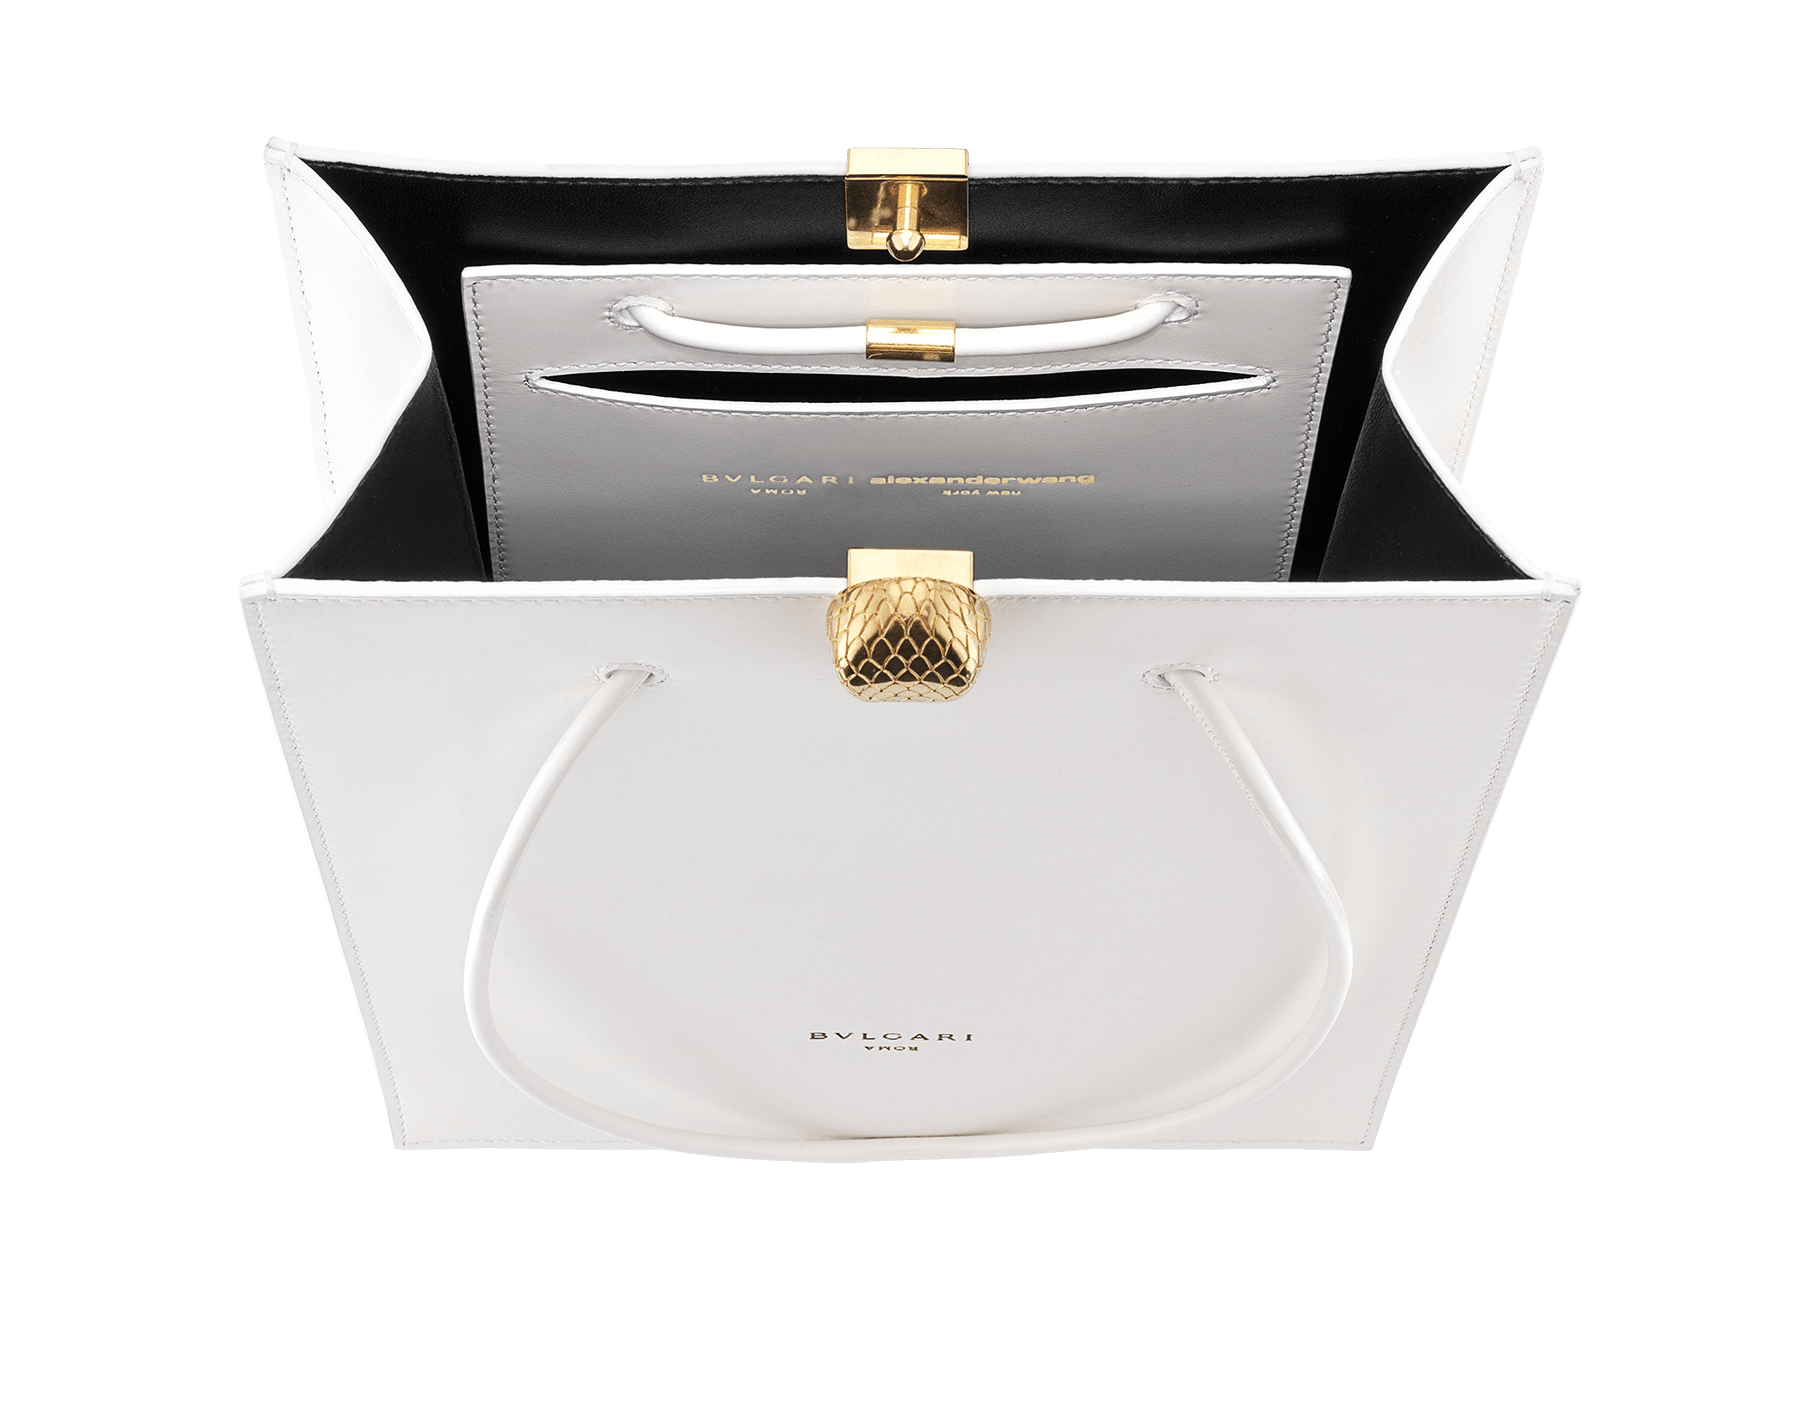 Alexander Wang x Bvlgari shopping tote bag in smooth white calf leather. New Serpenti head closure in antique gold plated brass with tempting red enamel eyes. Limited edition. 288730 image 4